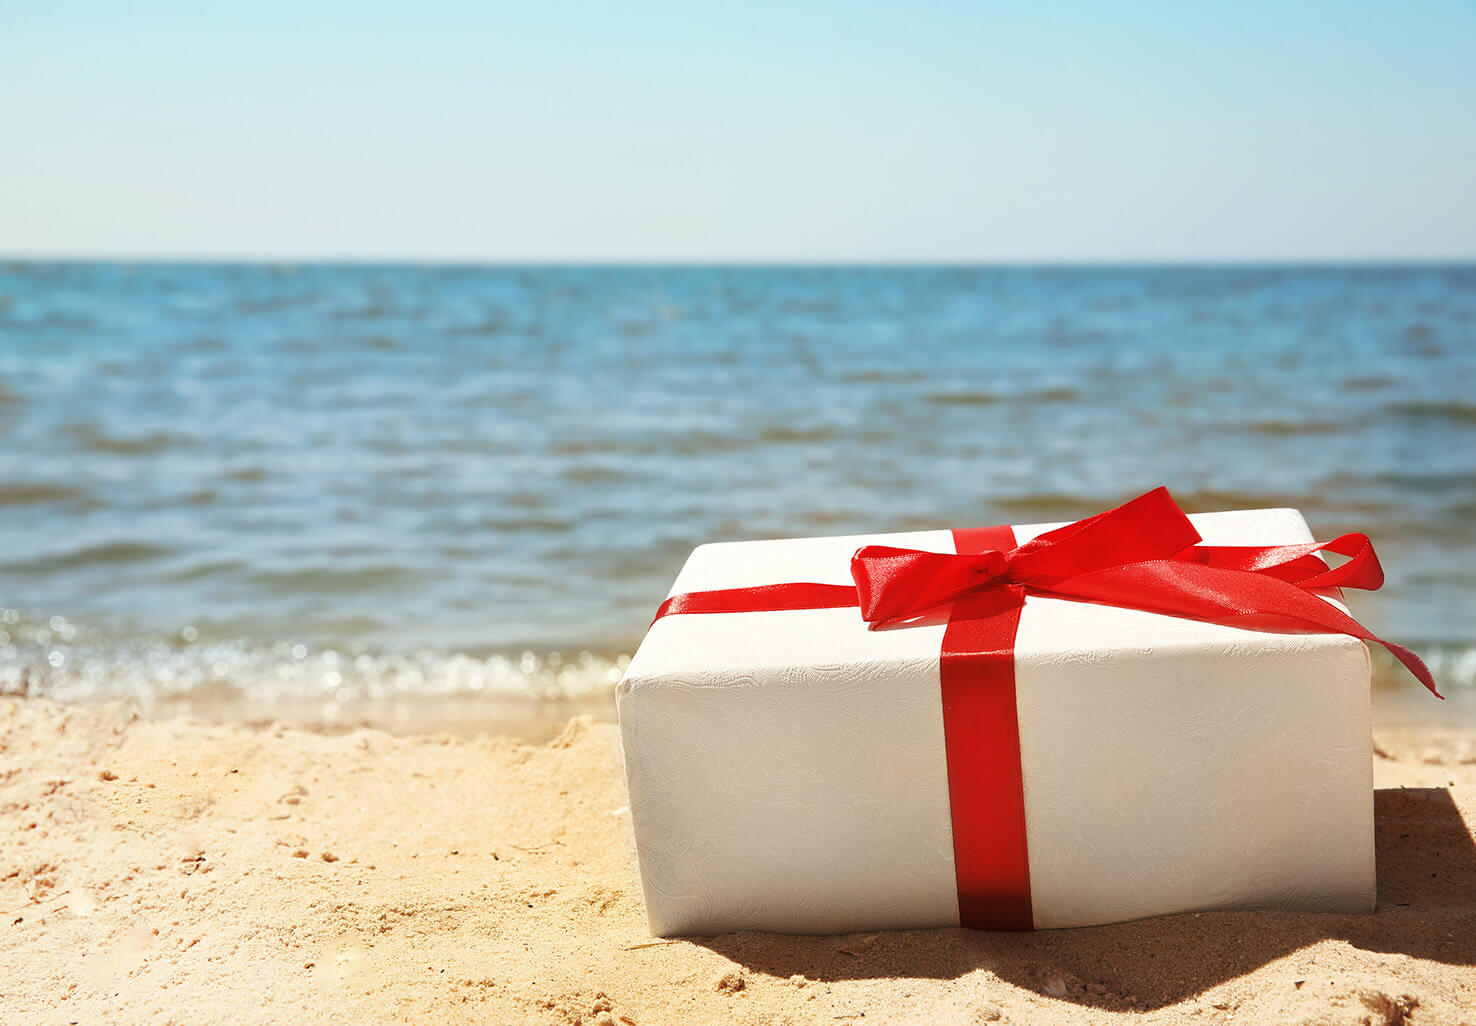 Gift with red ribbon on the beach